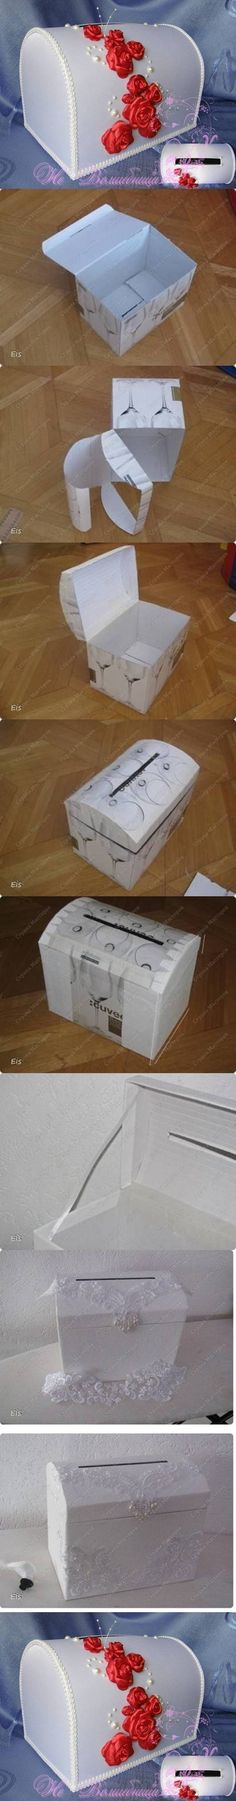 DIY Cardboard Box Art DIY Projects | UsefulDIY.com Follow us on Facebook ==> https://www.facebook.com/UsefulDiy